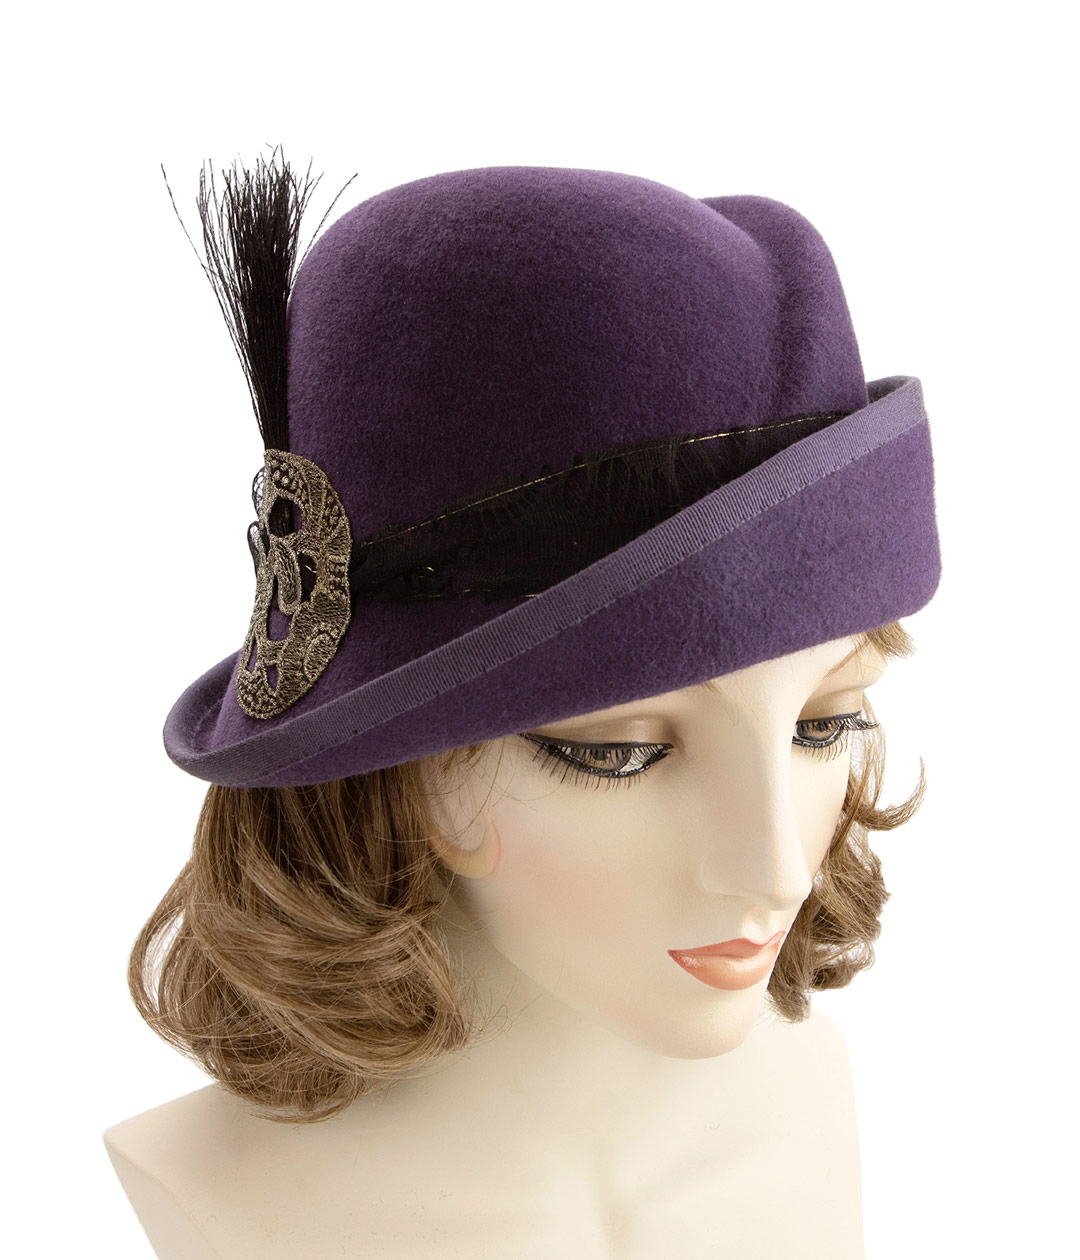 Eggplant purple cloche with gold vintage trim